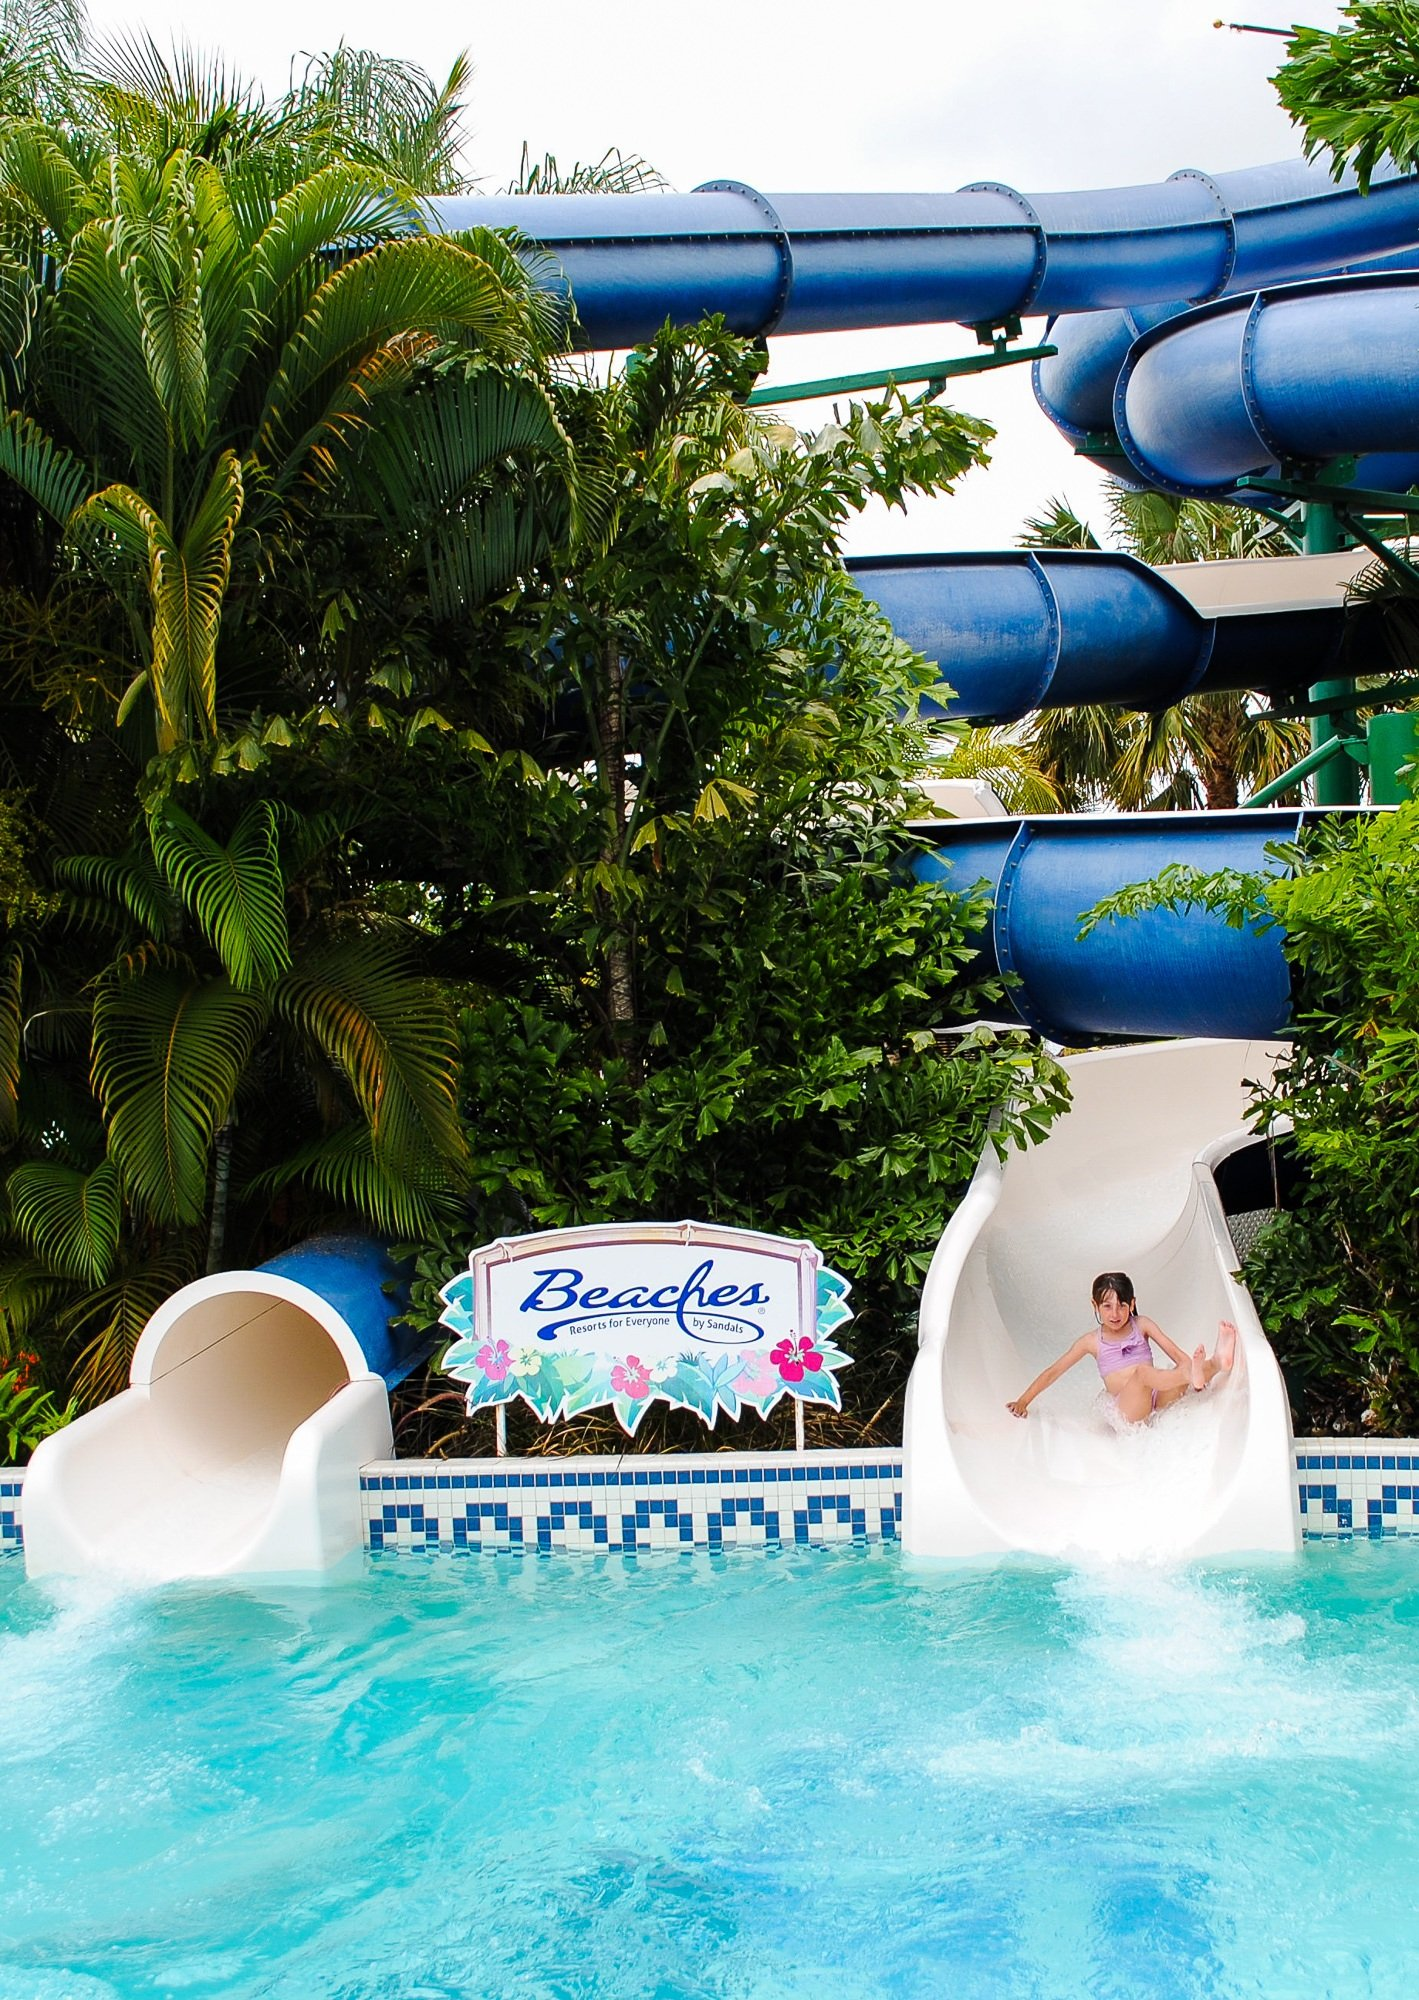 Waterslides at Beaches Negril Hotel